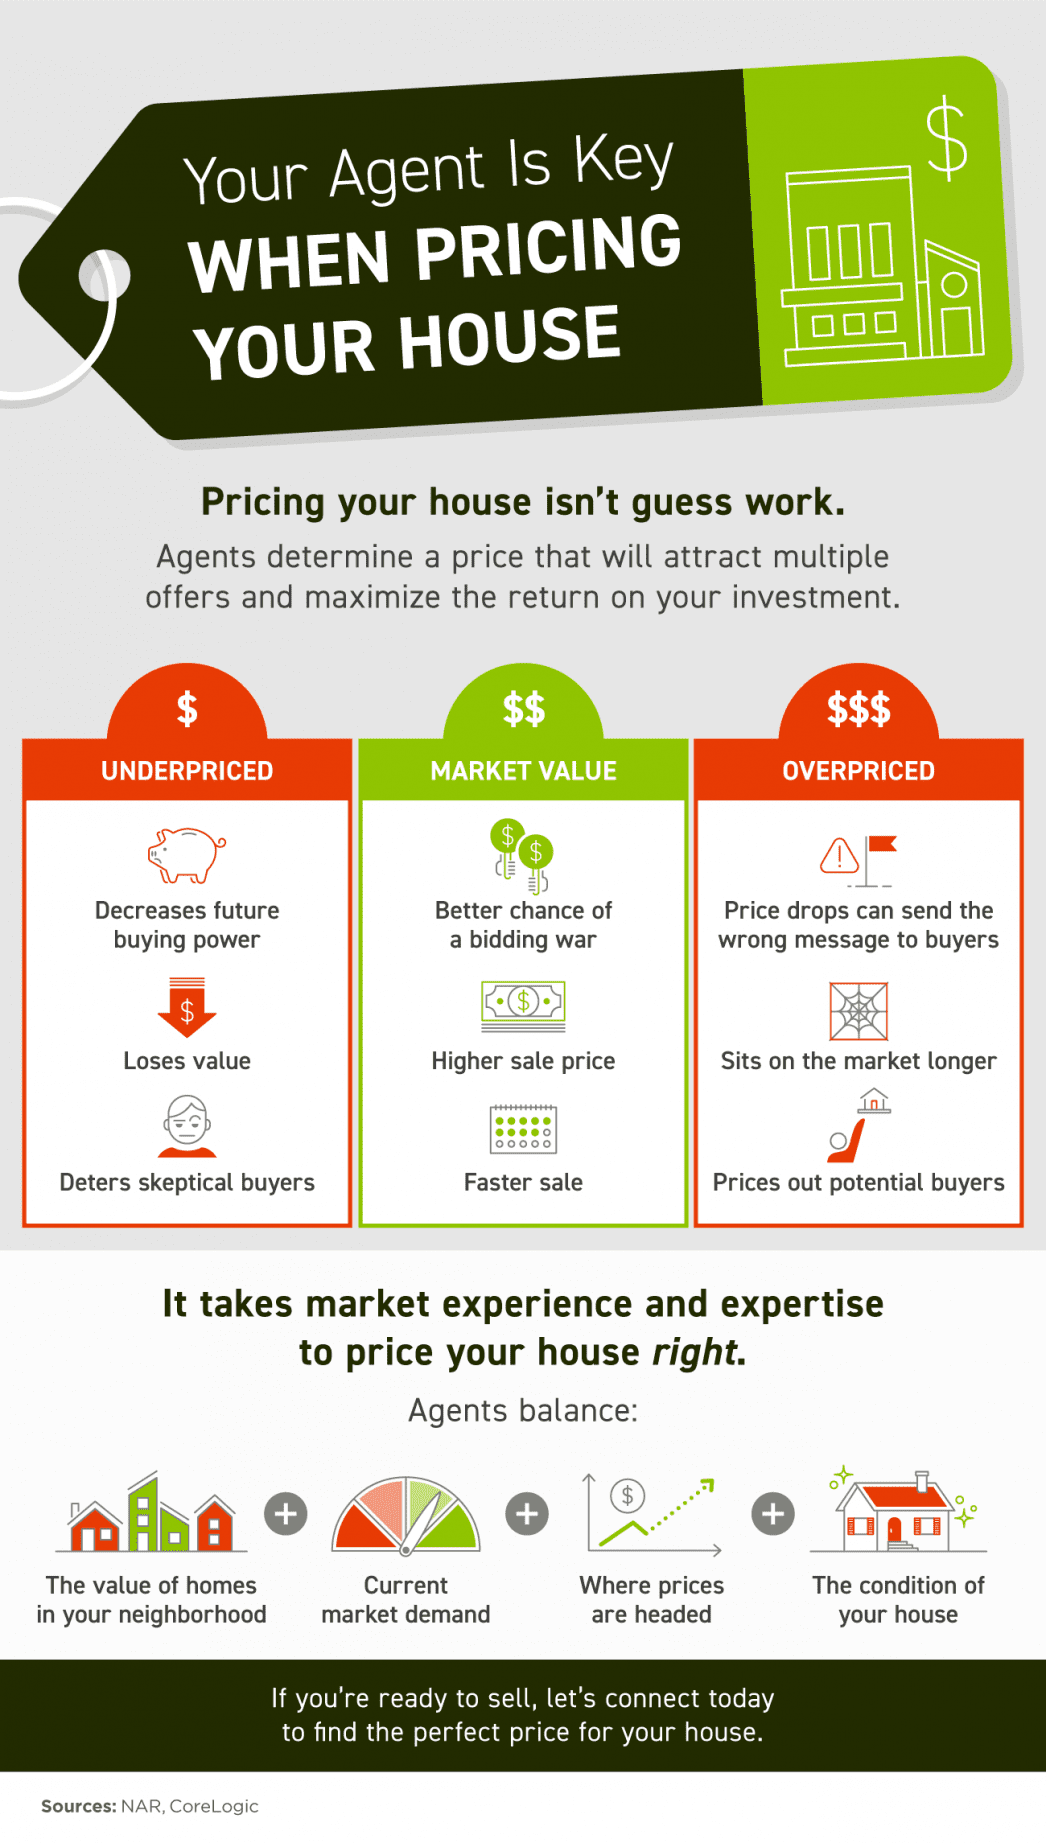 your real estate agent is key when pricing your house